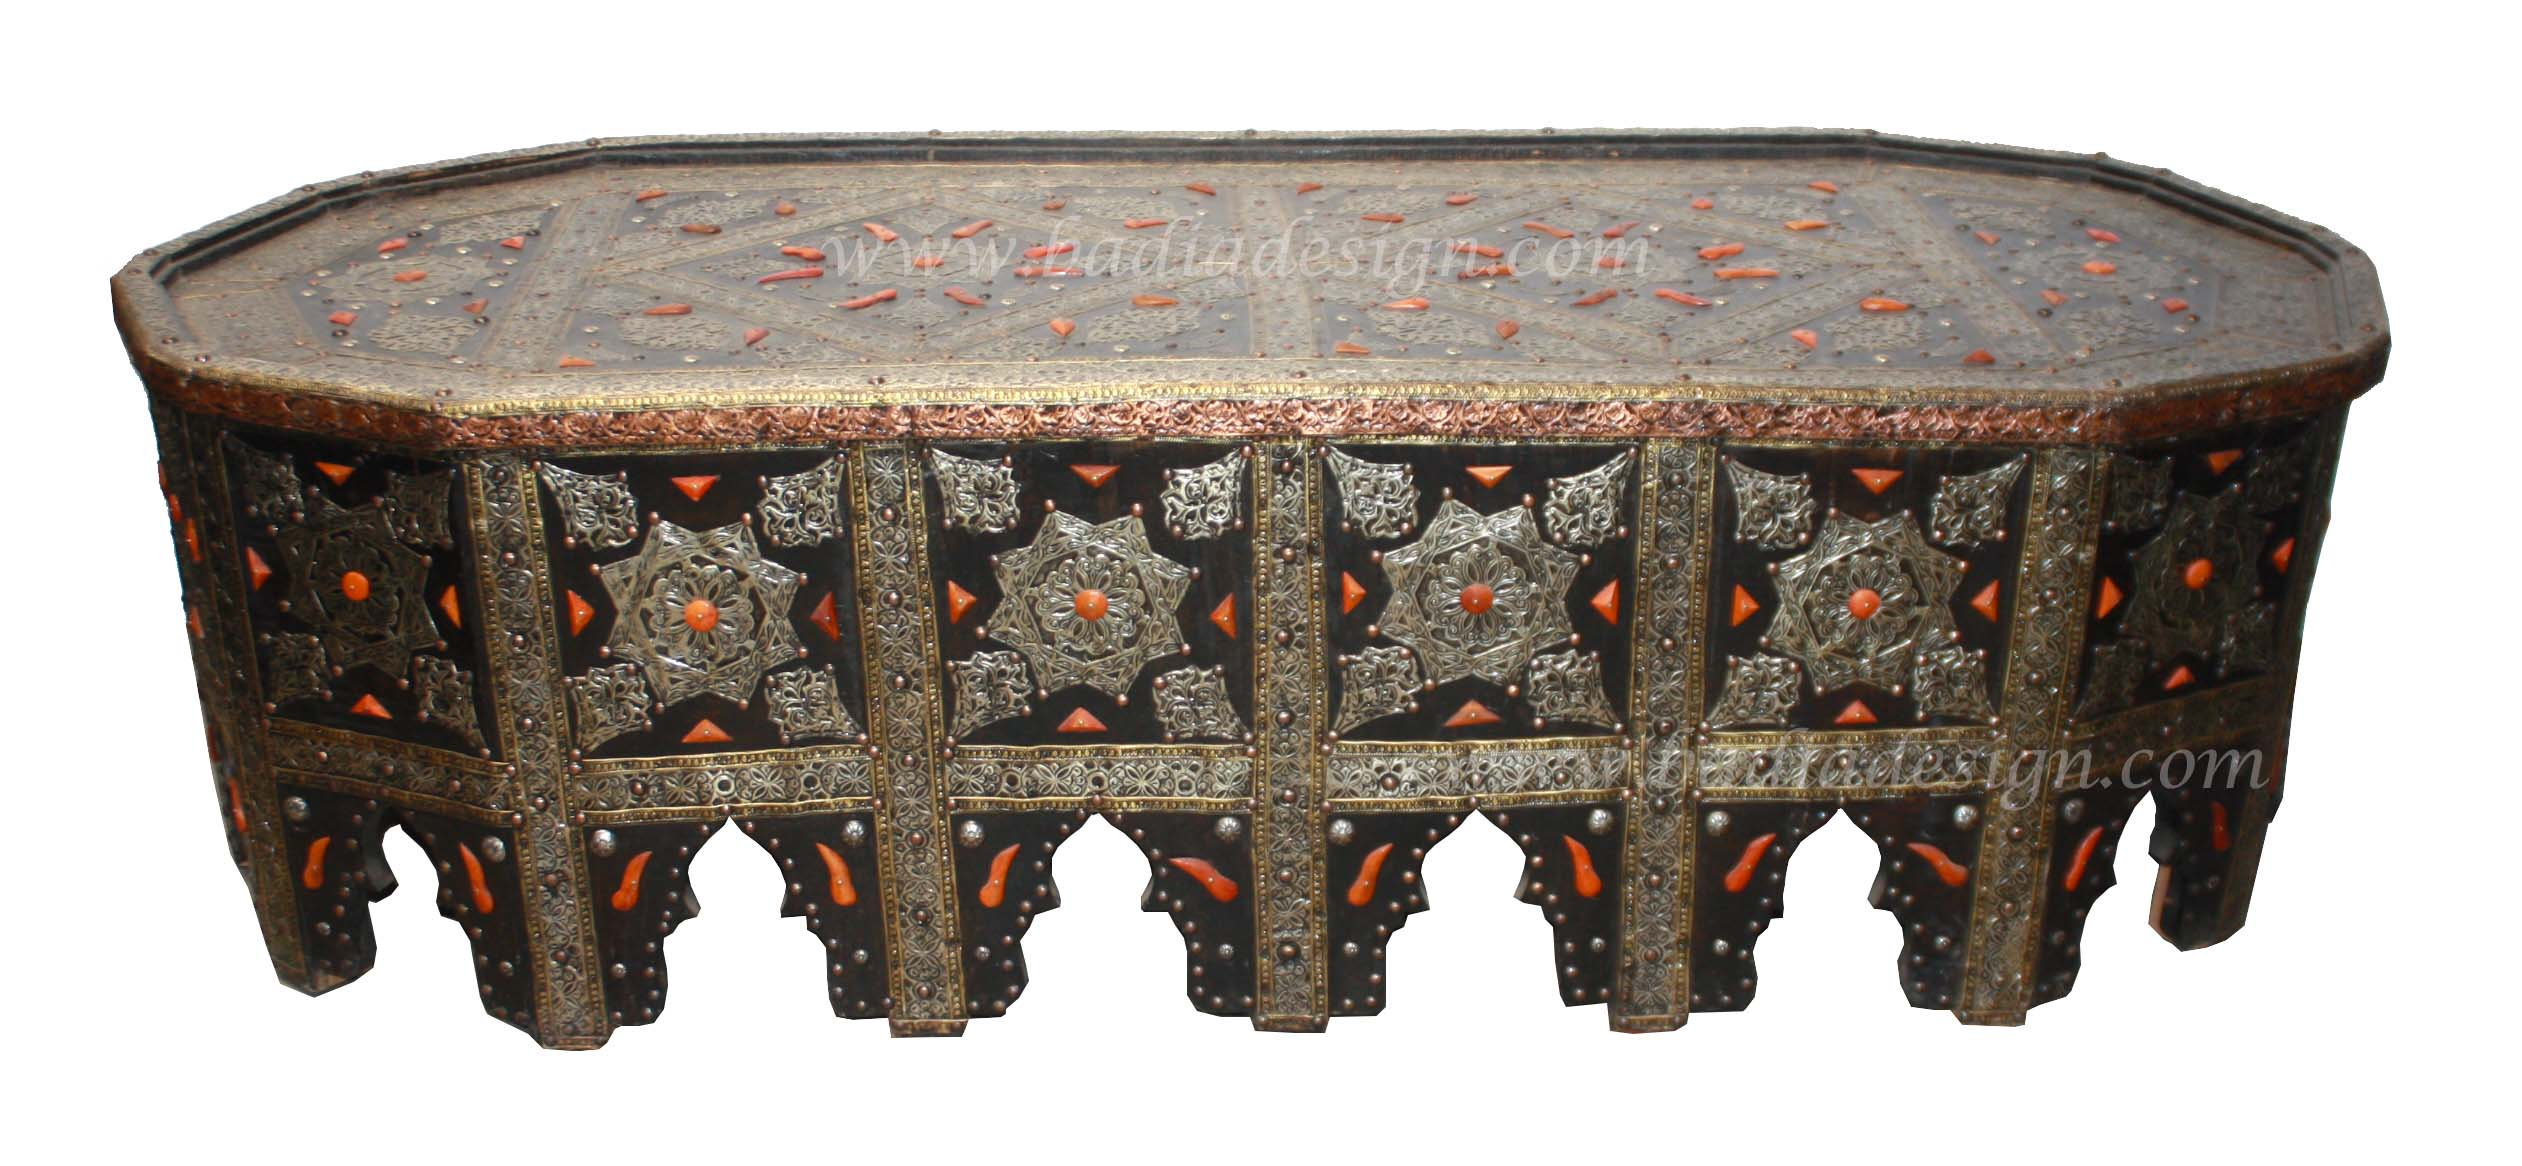 moroccan-oval-shaped-metal-and-bone-coffee-table-mb-st061.jpg